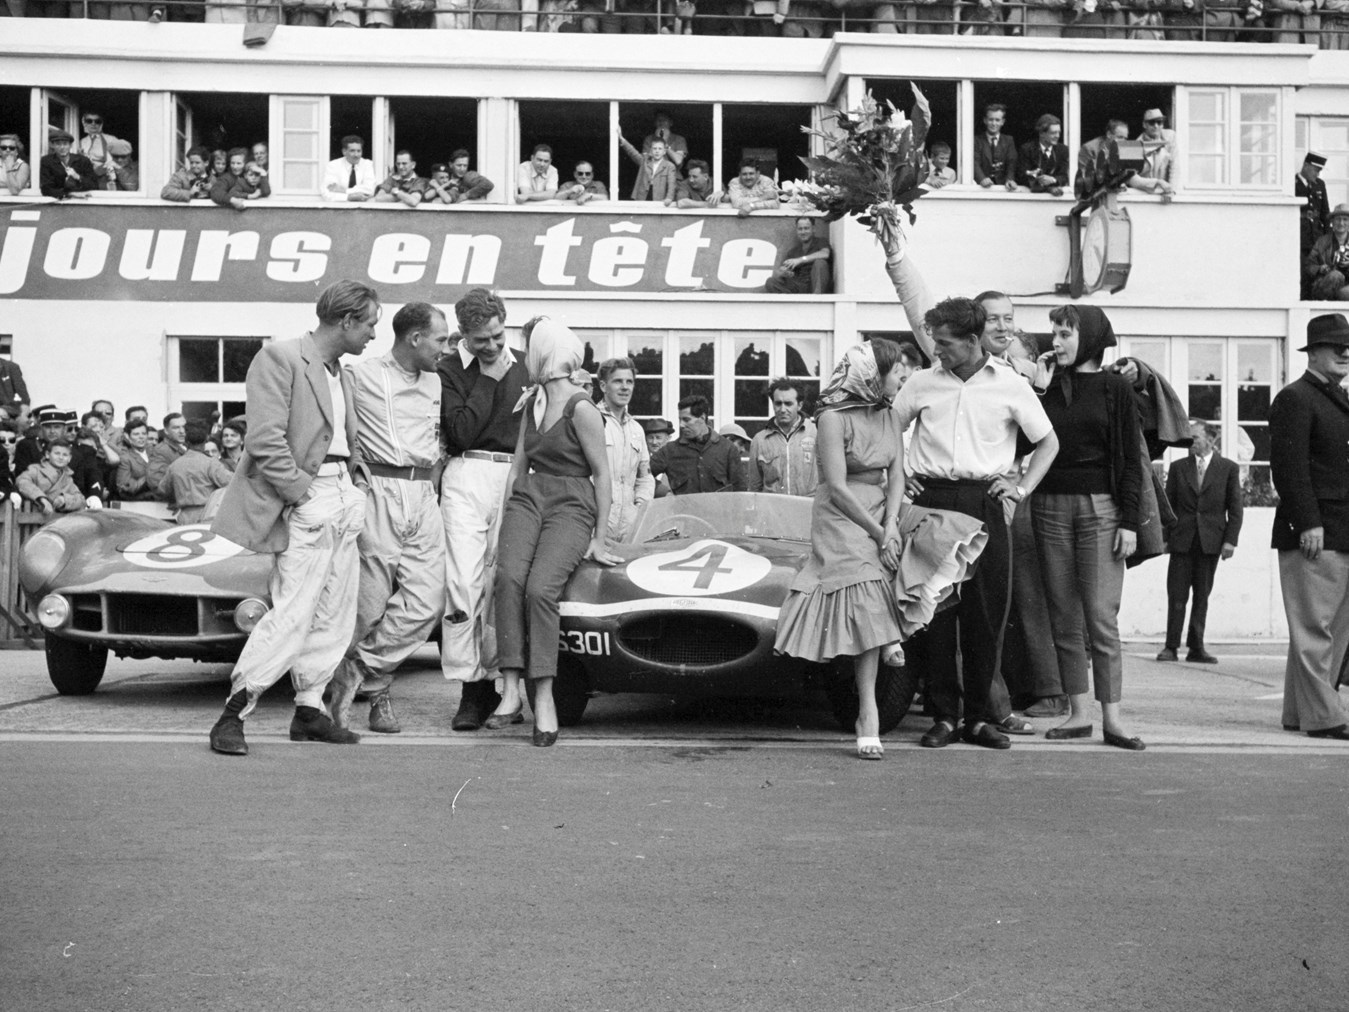 At the end of the 1956 Le Mans the Ecurie Ecosse team Jaguar D Type driven by Ninian Sanderson and Ron Flockhart was victorious and the Aston Martin DB3 S of Stirling Moss and Peter Collins came second. (Picture courtesy the Revs Institute for Automotive Research).